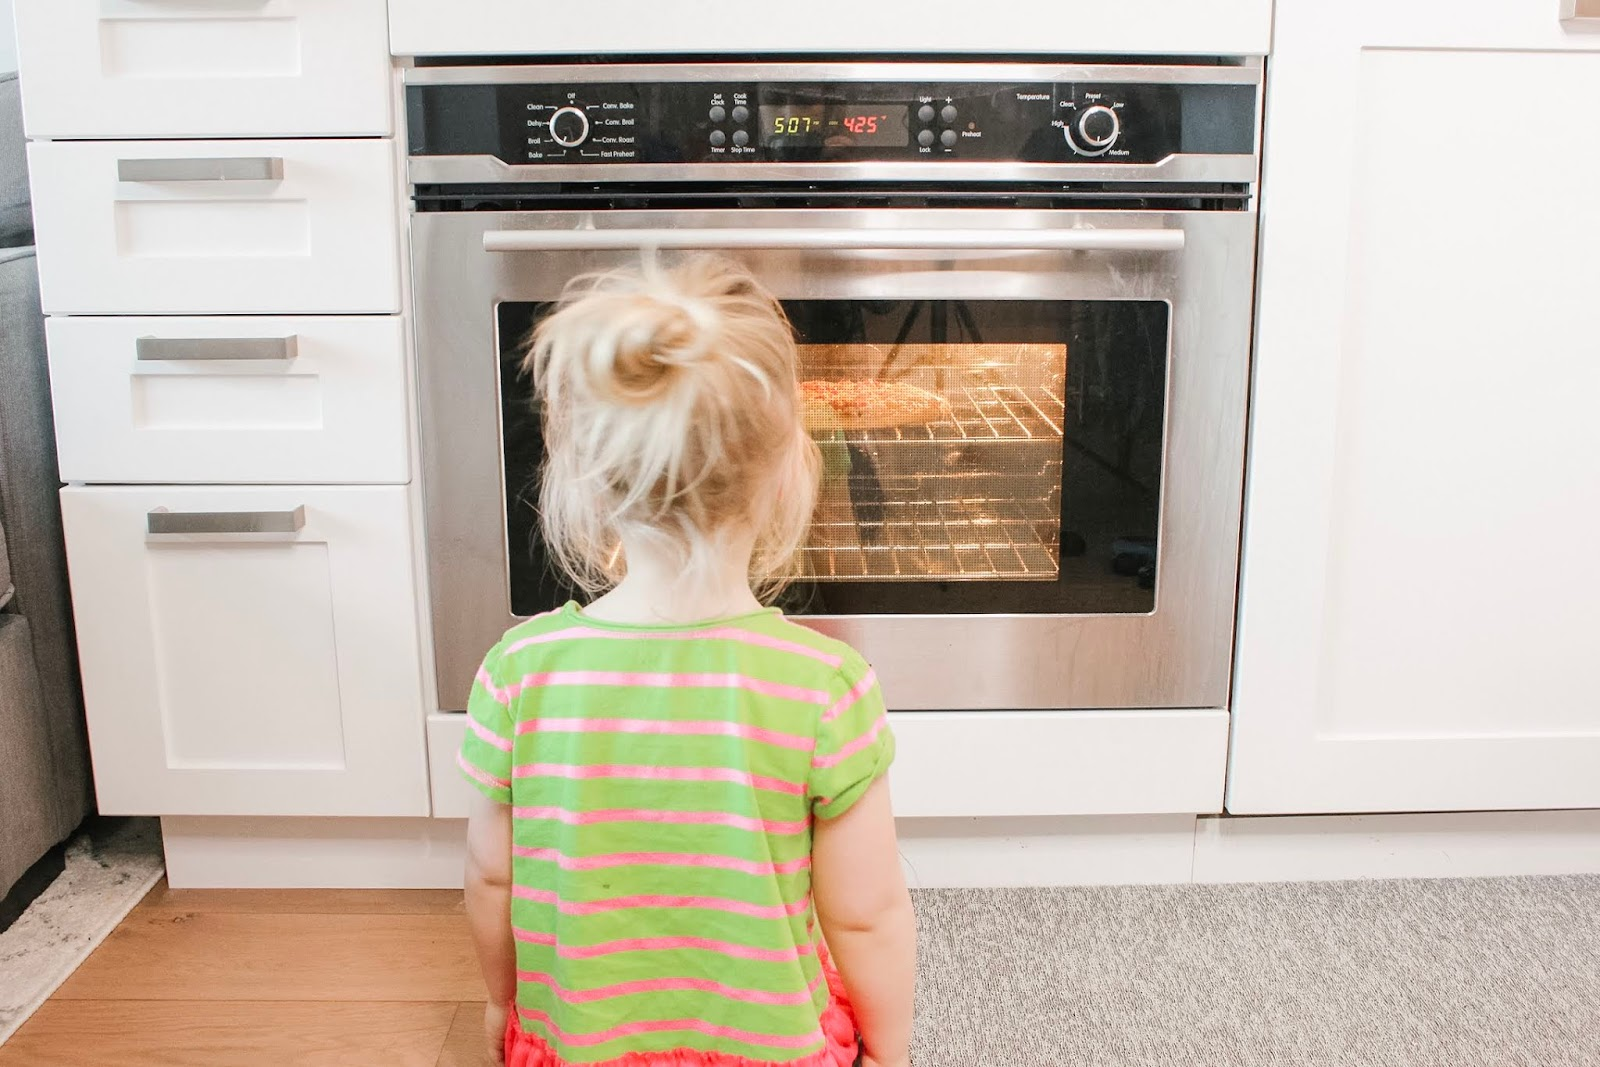 toddler sitting in front of oven waiting for pizza